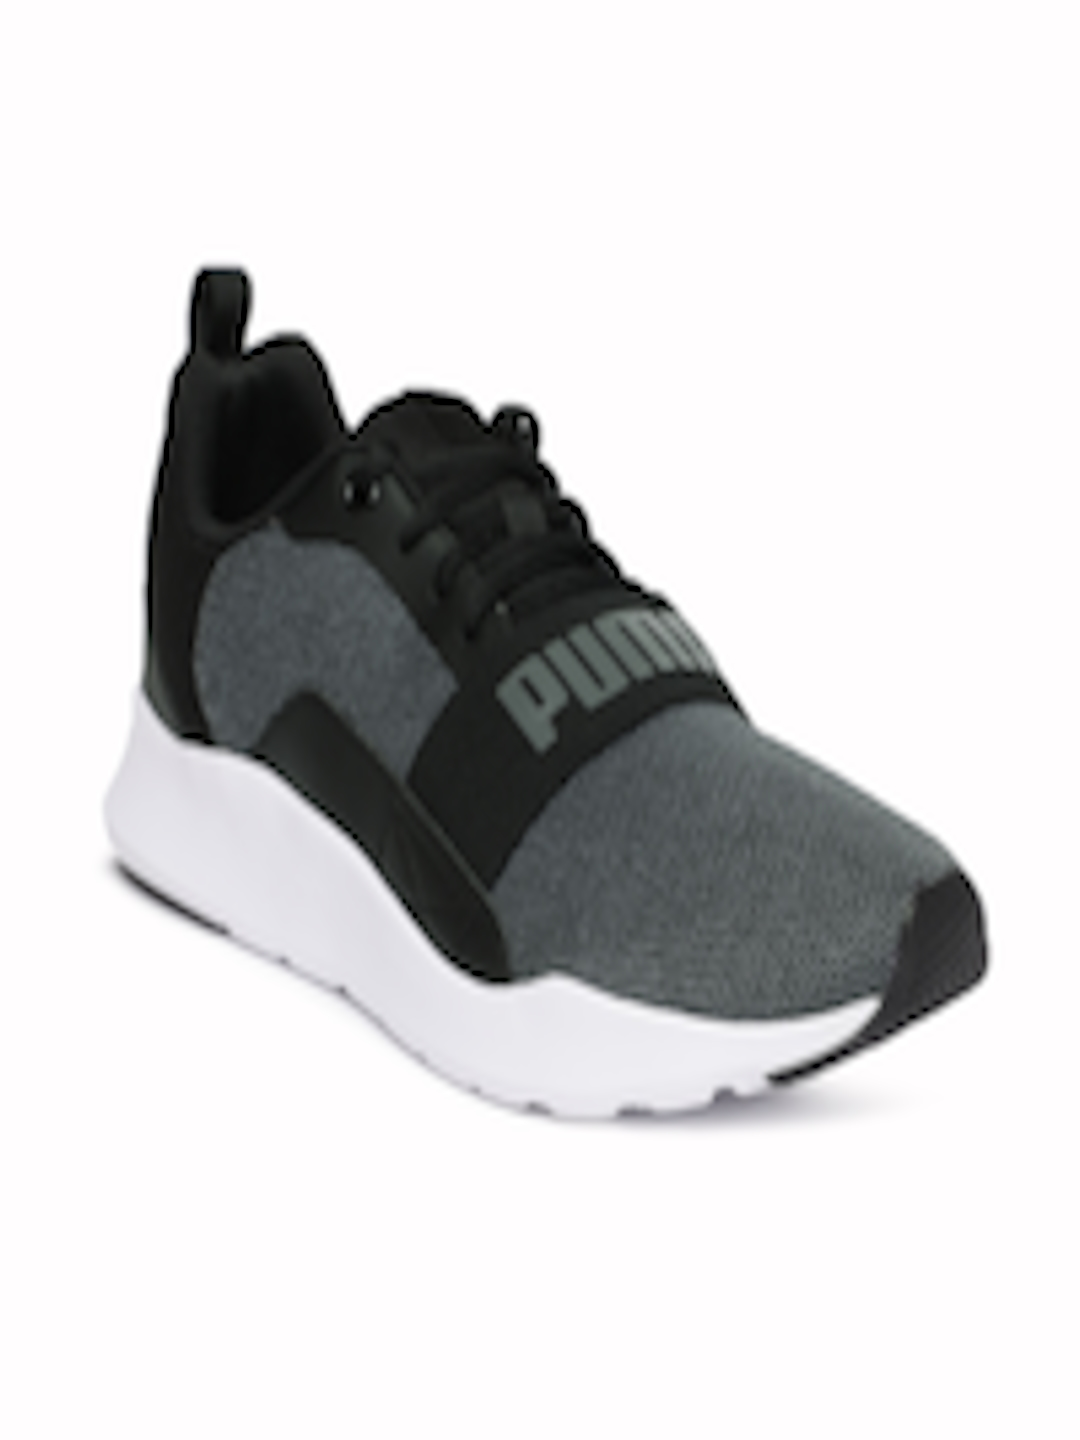 08da97002891 Buy Puma Men Black Wired Knit Sneakers - Casual Shoes for Men 6816084